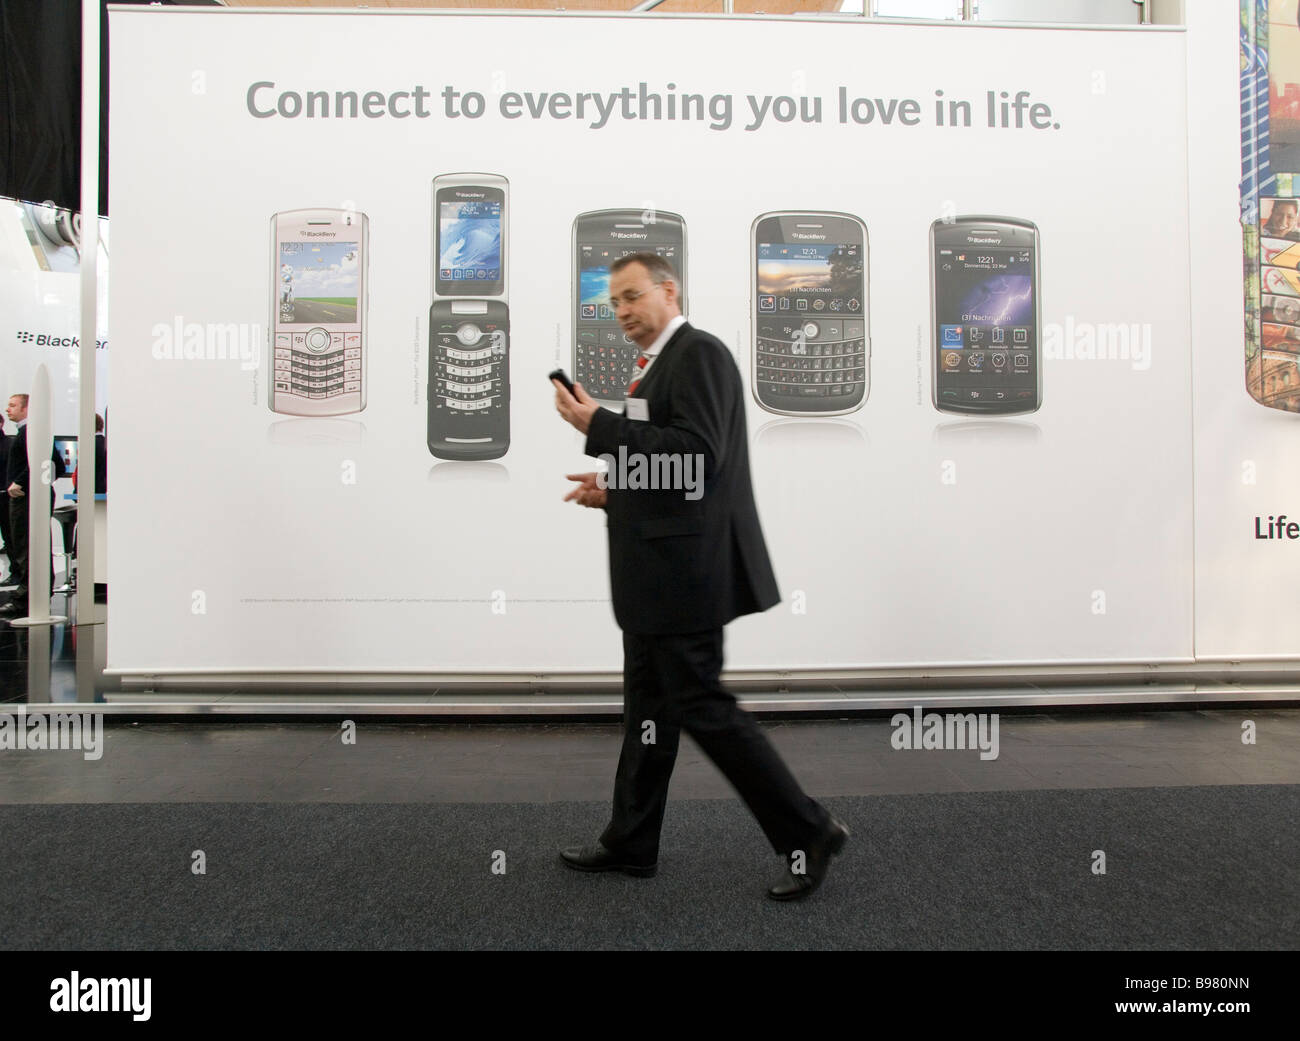 CeBIT businessman with smartphone in front of an advertising poster for various smartphones - Stock Image